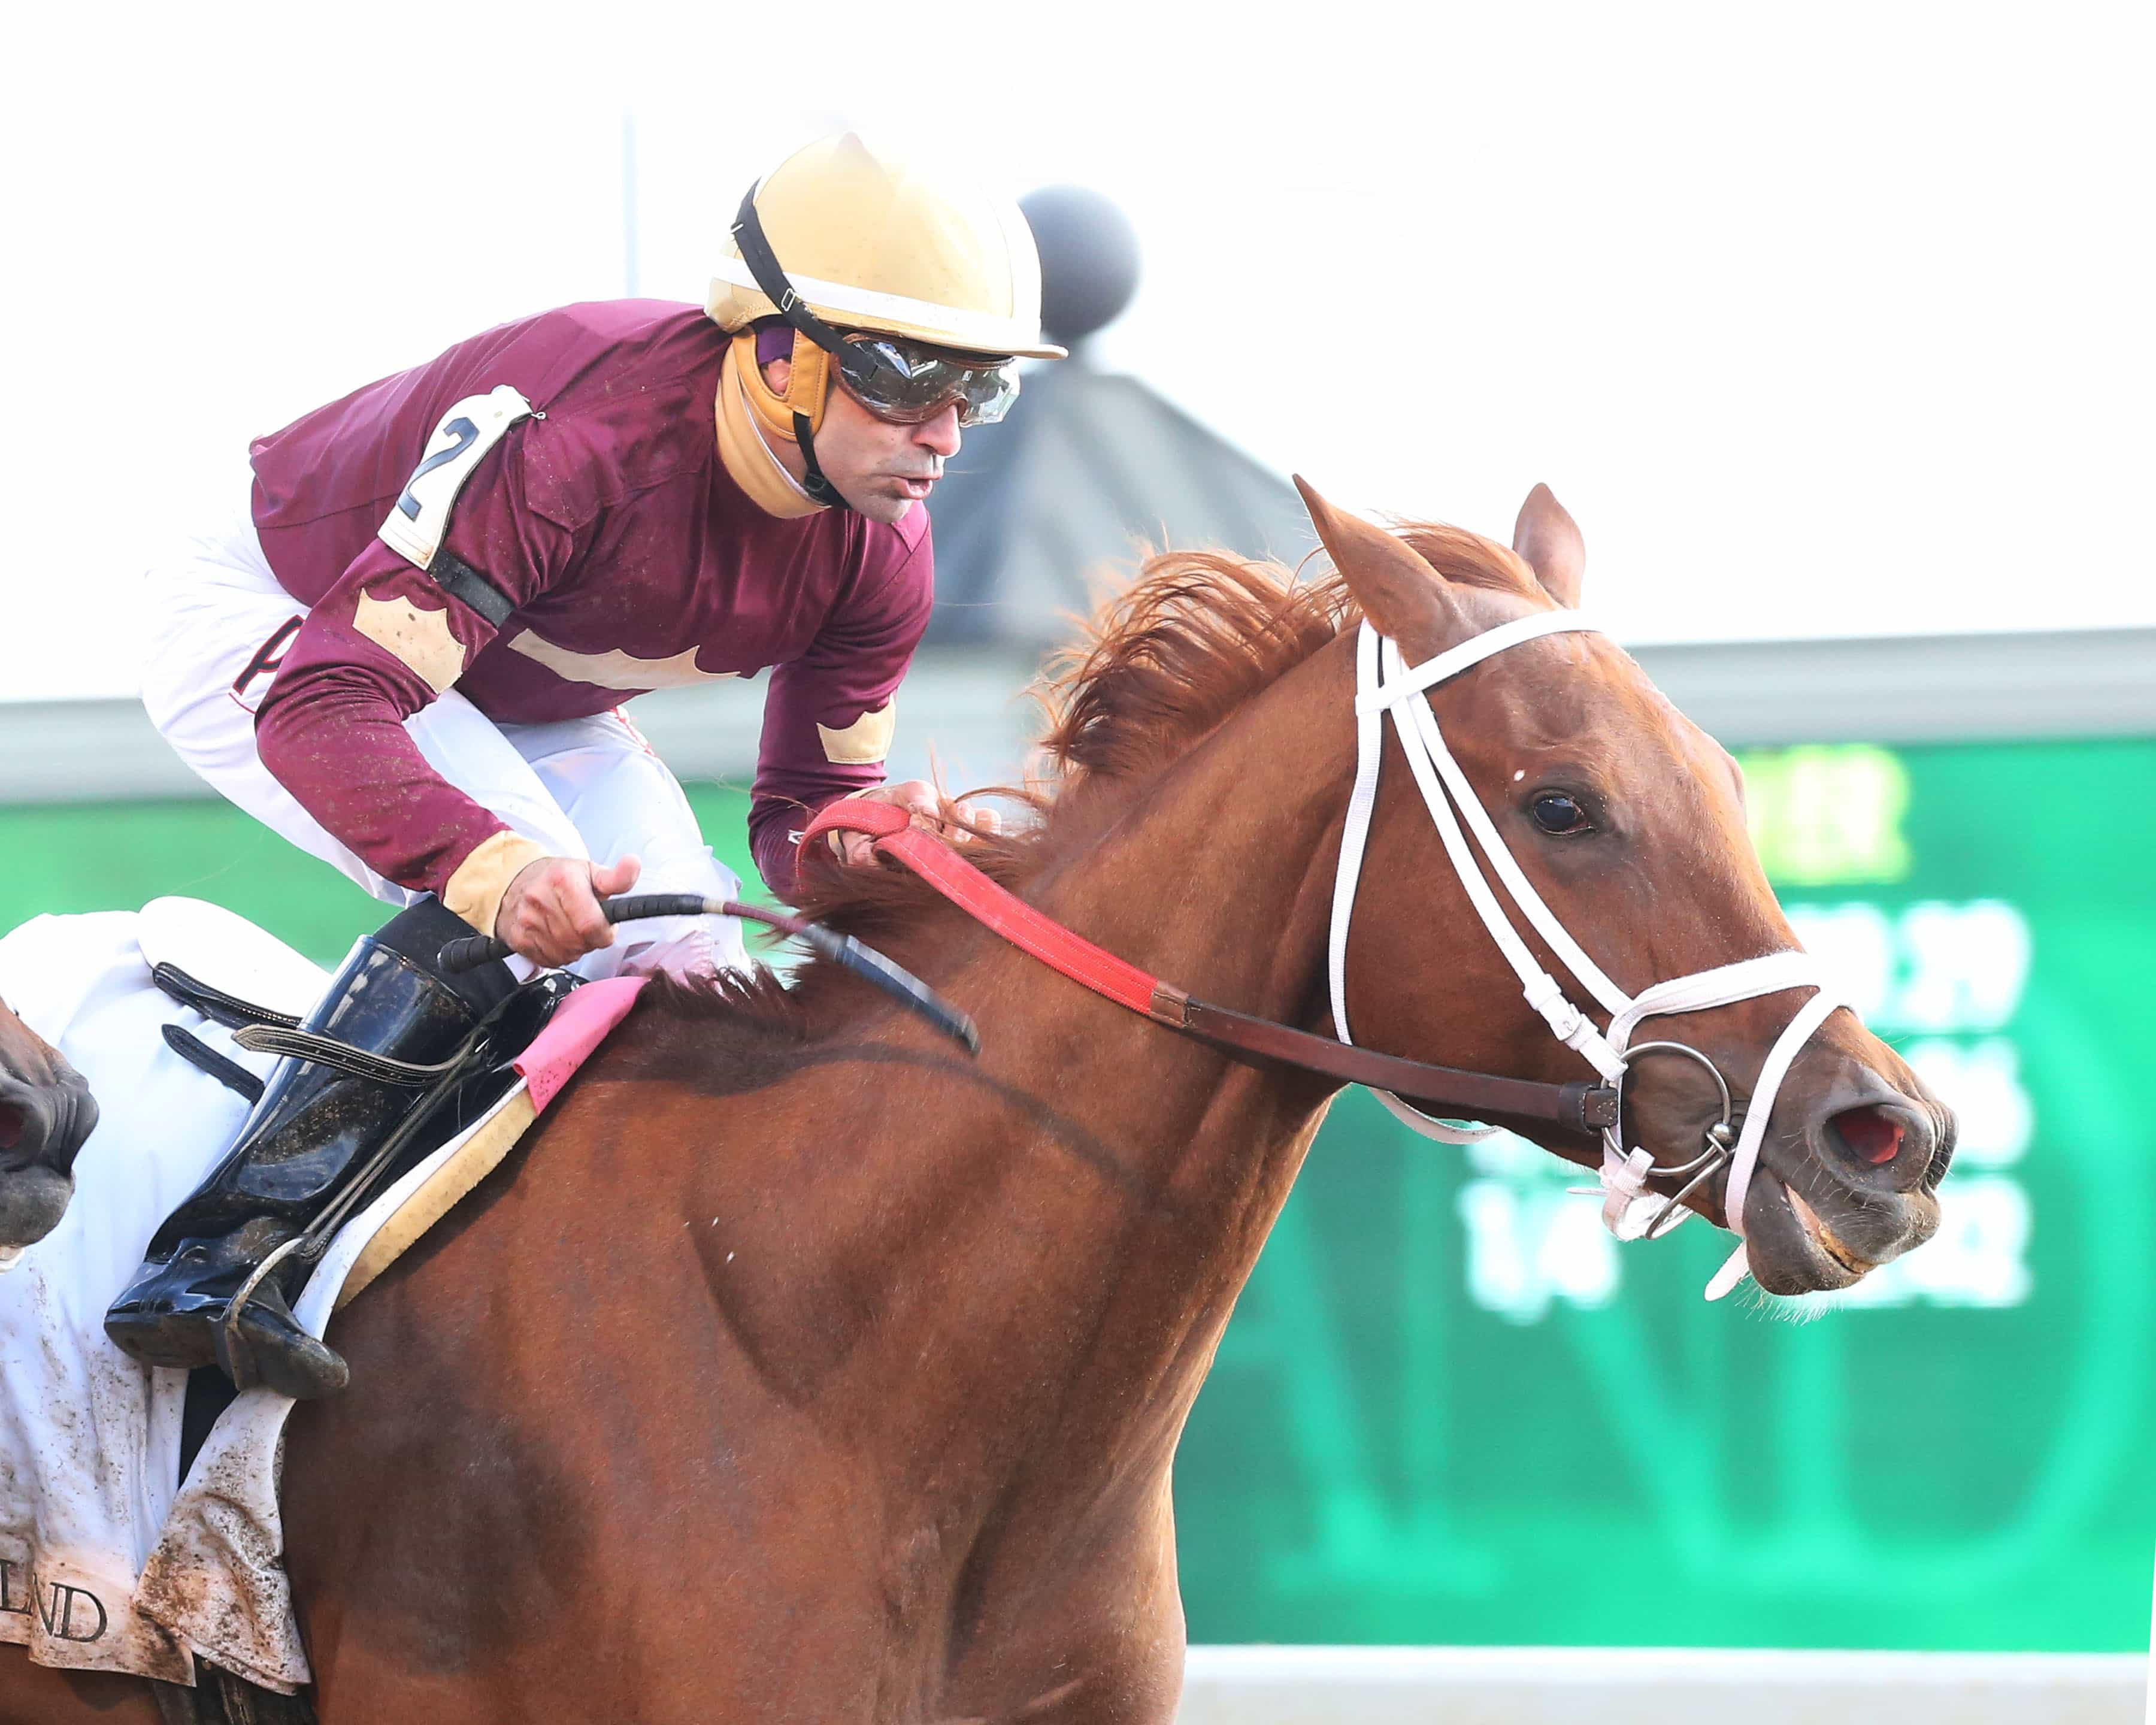 SHEER DRAMA The Madison Gr I - 15th Running Keeneland Race Course Lexington, Kentucky April 9, 2016 Race #09 Purse $300,000 7 Furlongs 1:22.07 Harlod L. Queen, Owner David Fawkes, Trainer Joe Bravo, Jockey Stopchargingmaria (2nd) Wavell Avenue (3rd) $18.80 $8.00 $4.60 Order of Finish - 2, 12, 3, 5 Please Give Photo Credit To: / Coady Photography